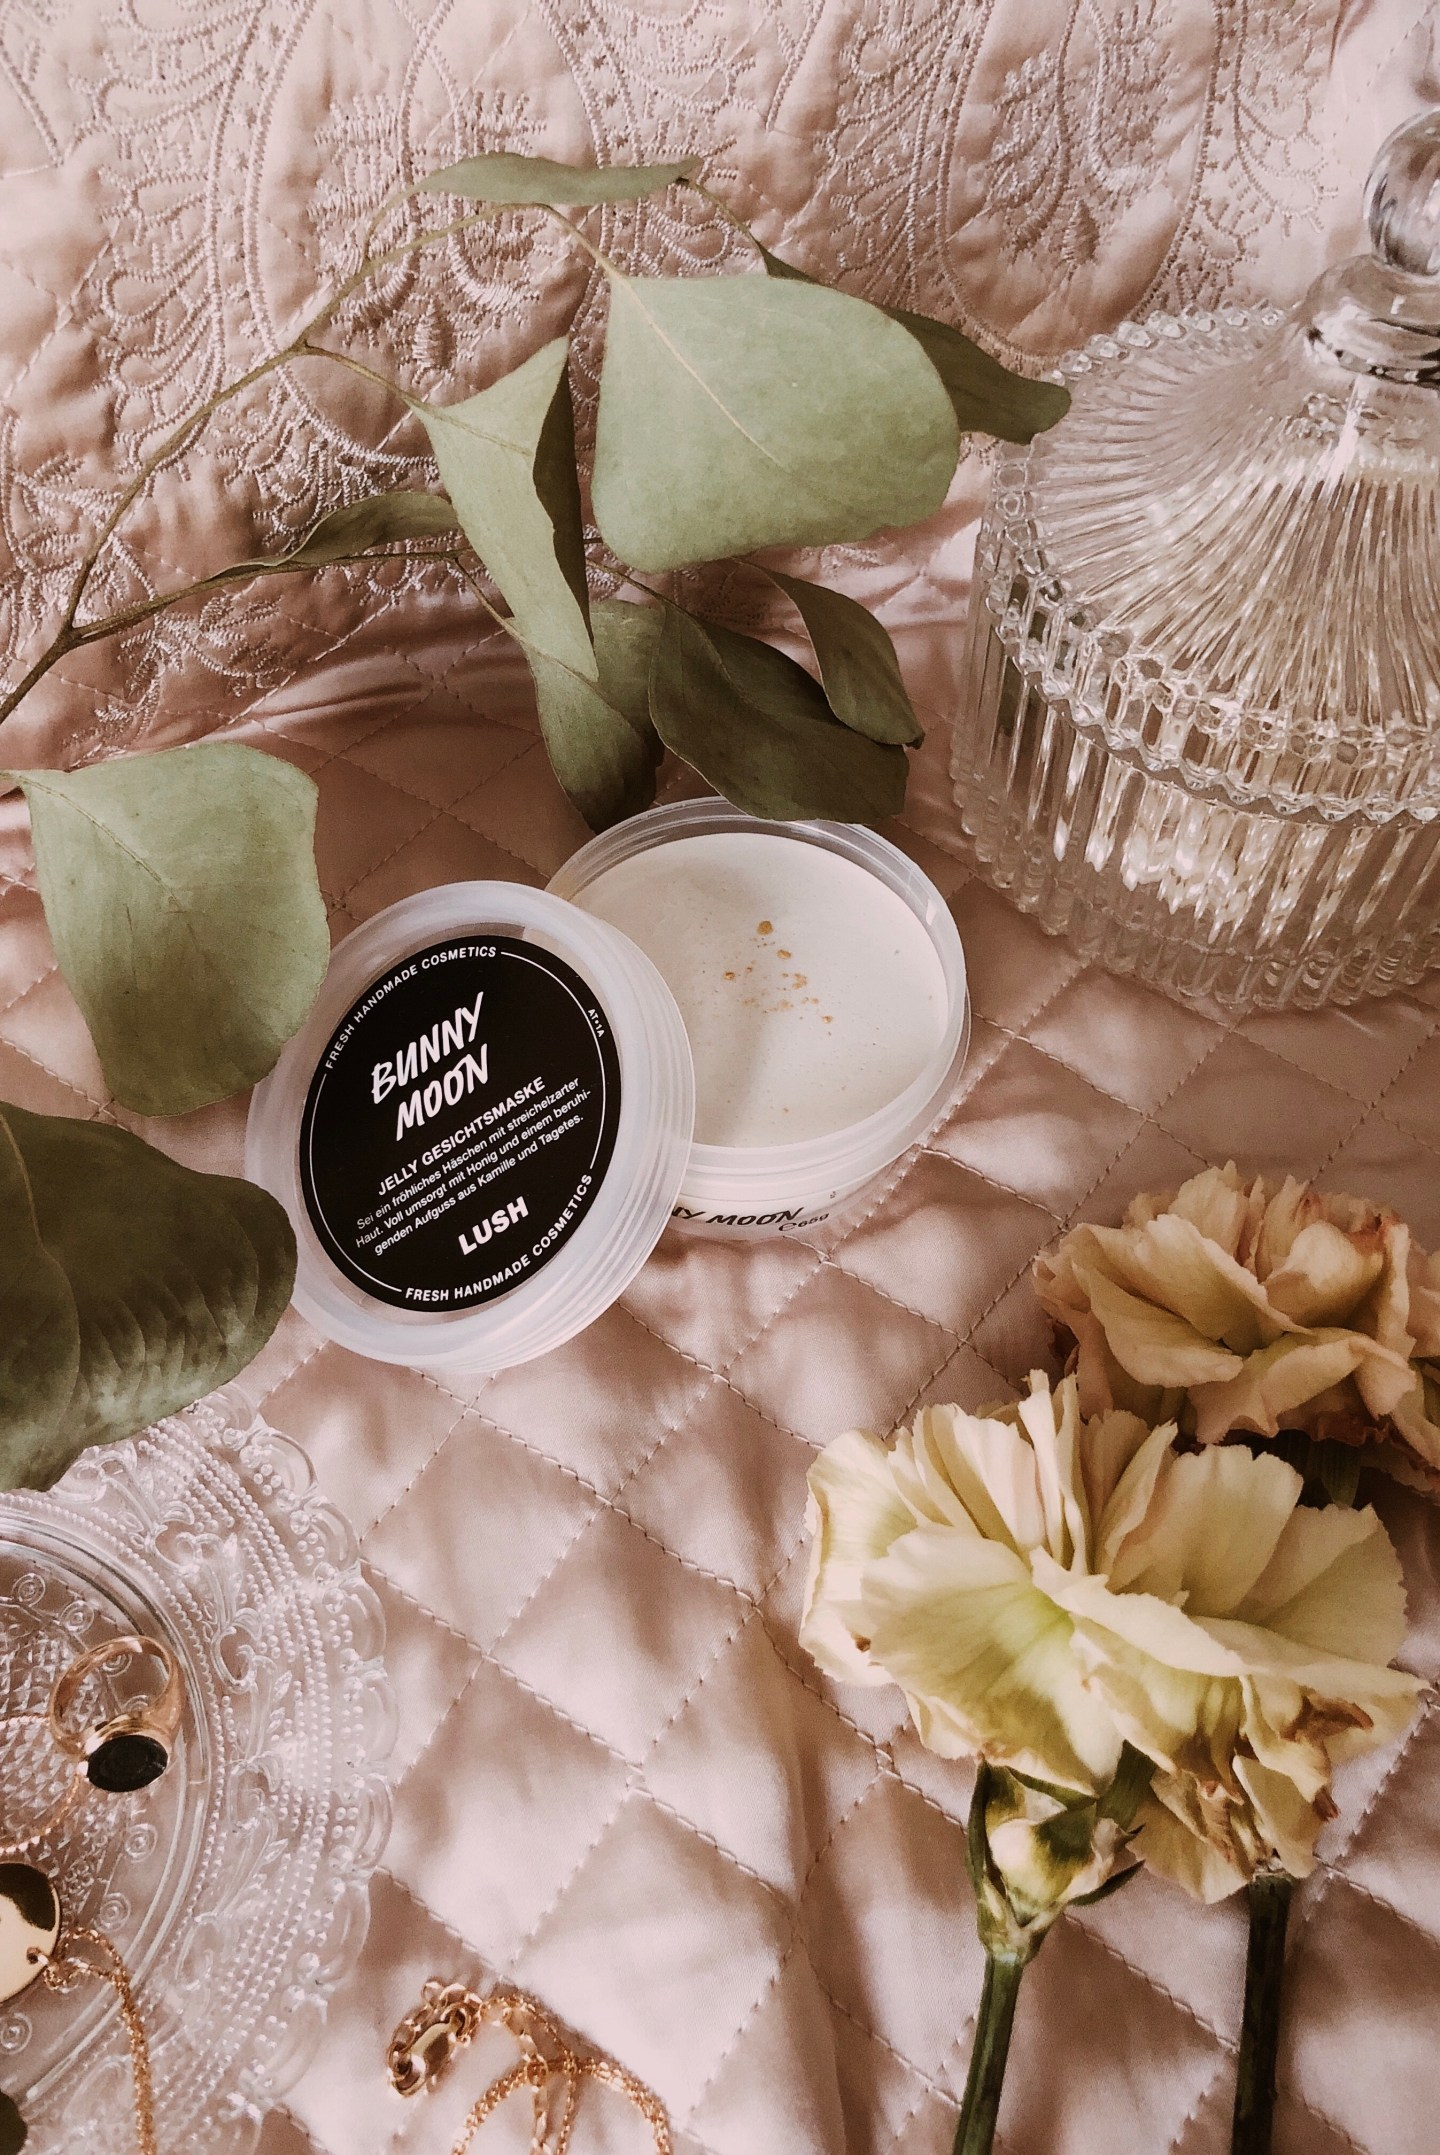 Lush Cosmetics Bunny Moon Jelly Face Mask